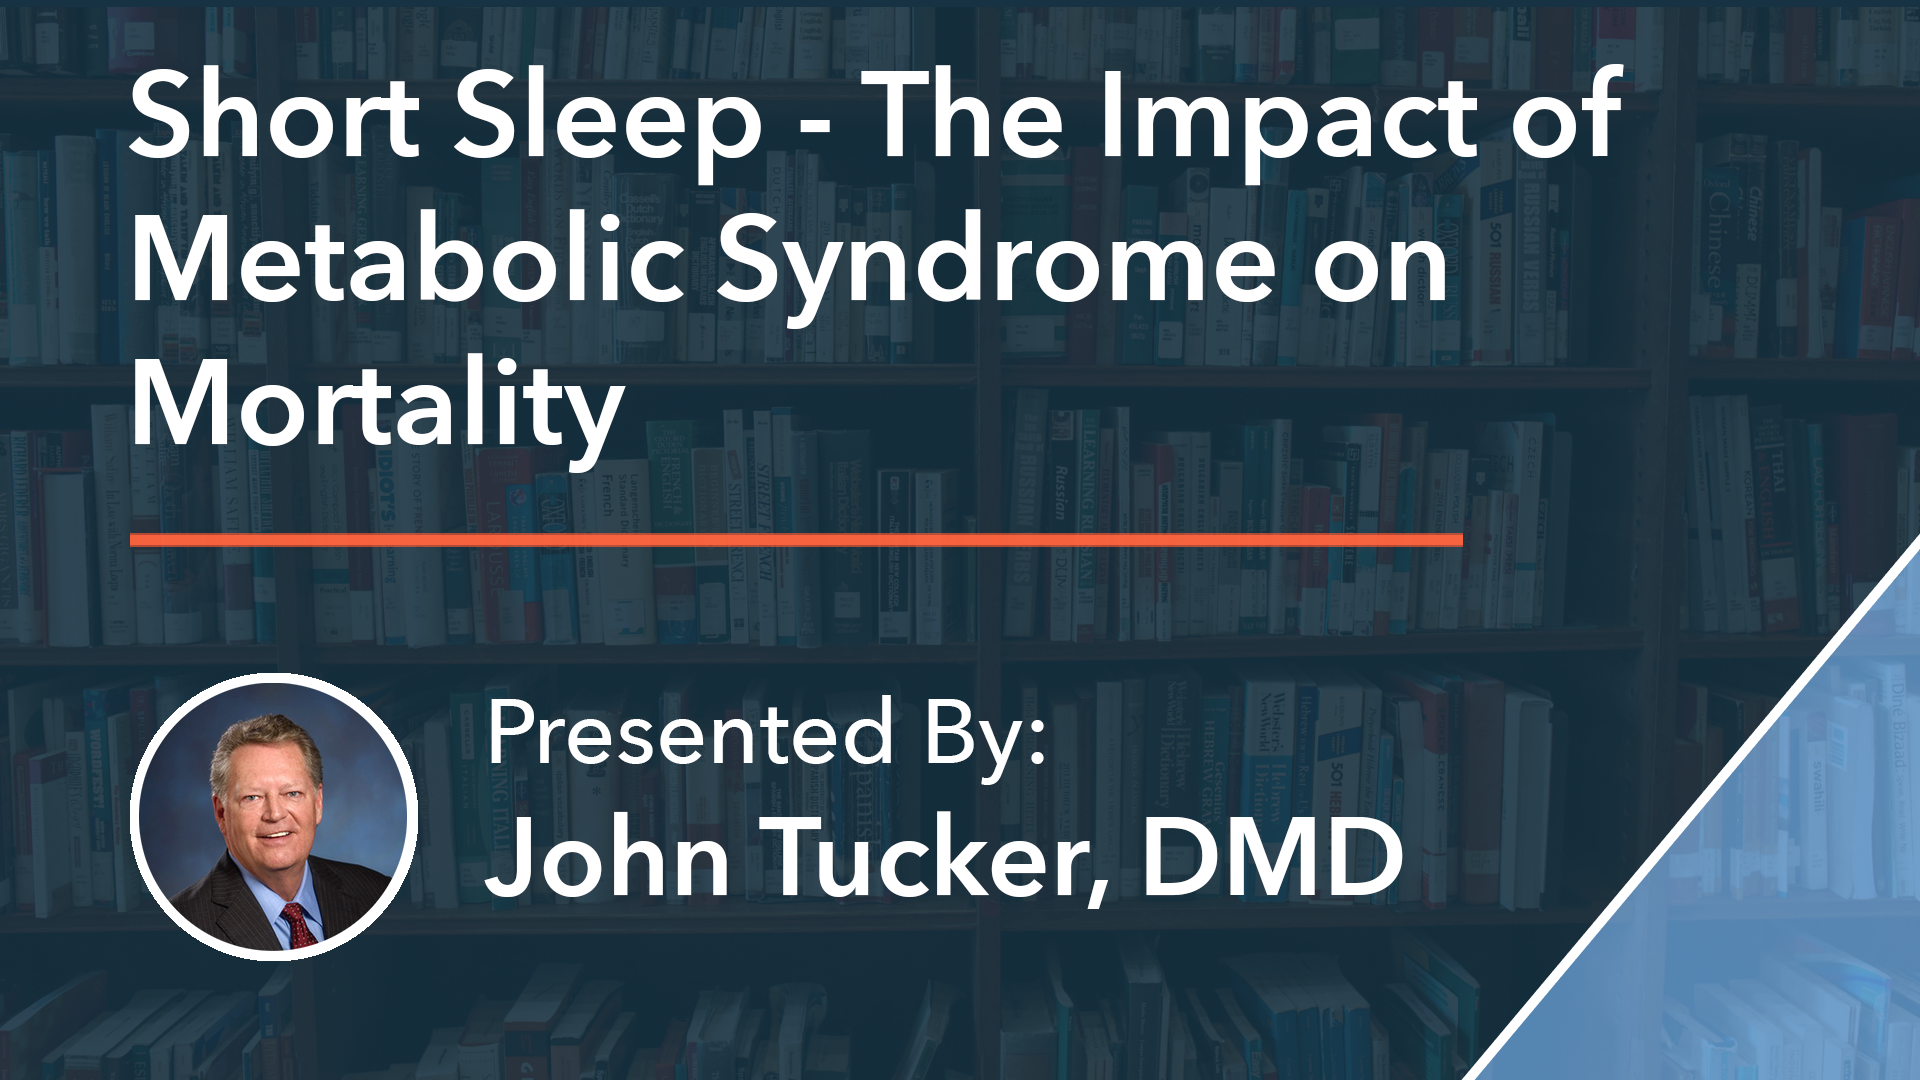 Short Sleep - The Impact of Metabolic Syndrome on Mortality Dr John Tucker